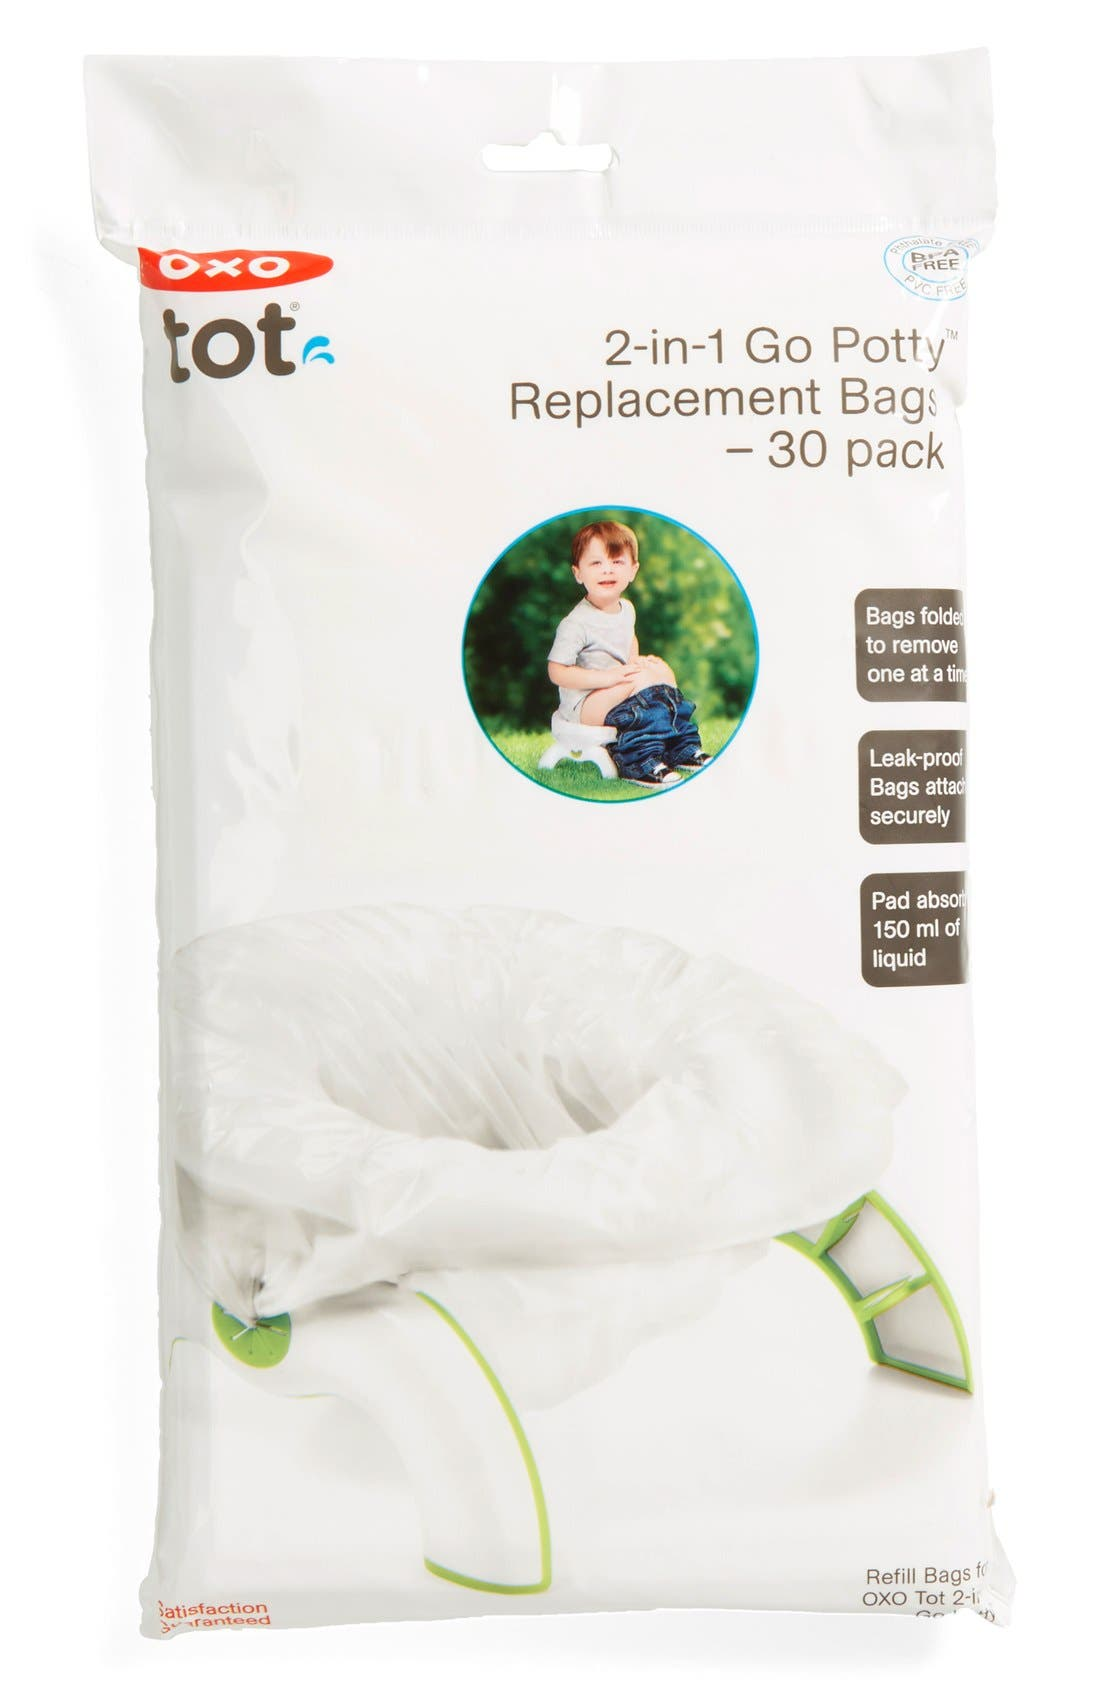 Alternate Image 1 Selected - OXO Tot '2-in-1 Go Potty' Refill Bags